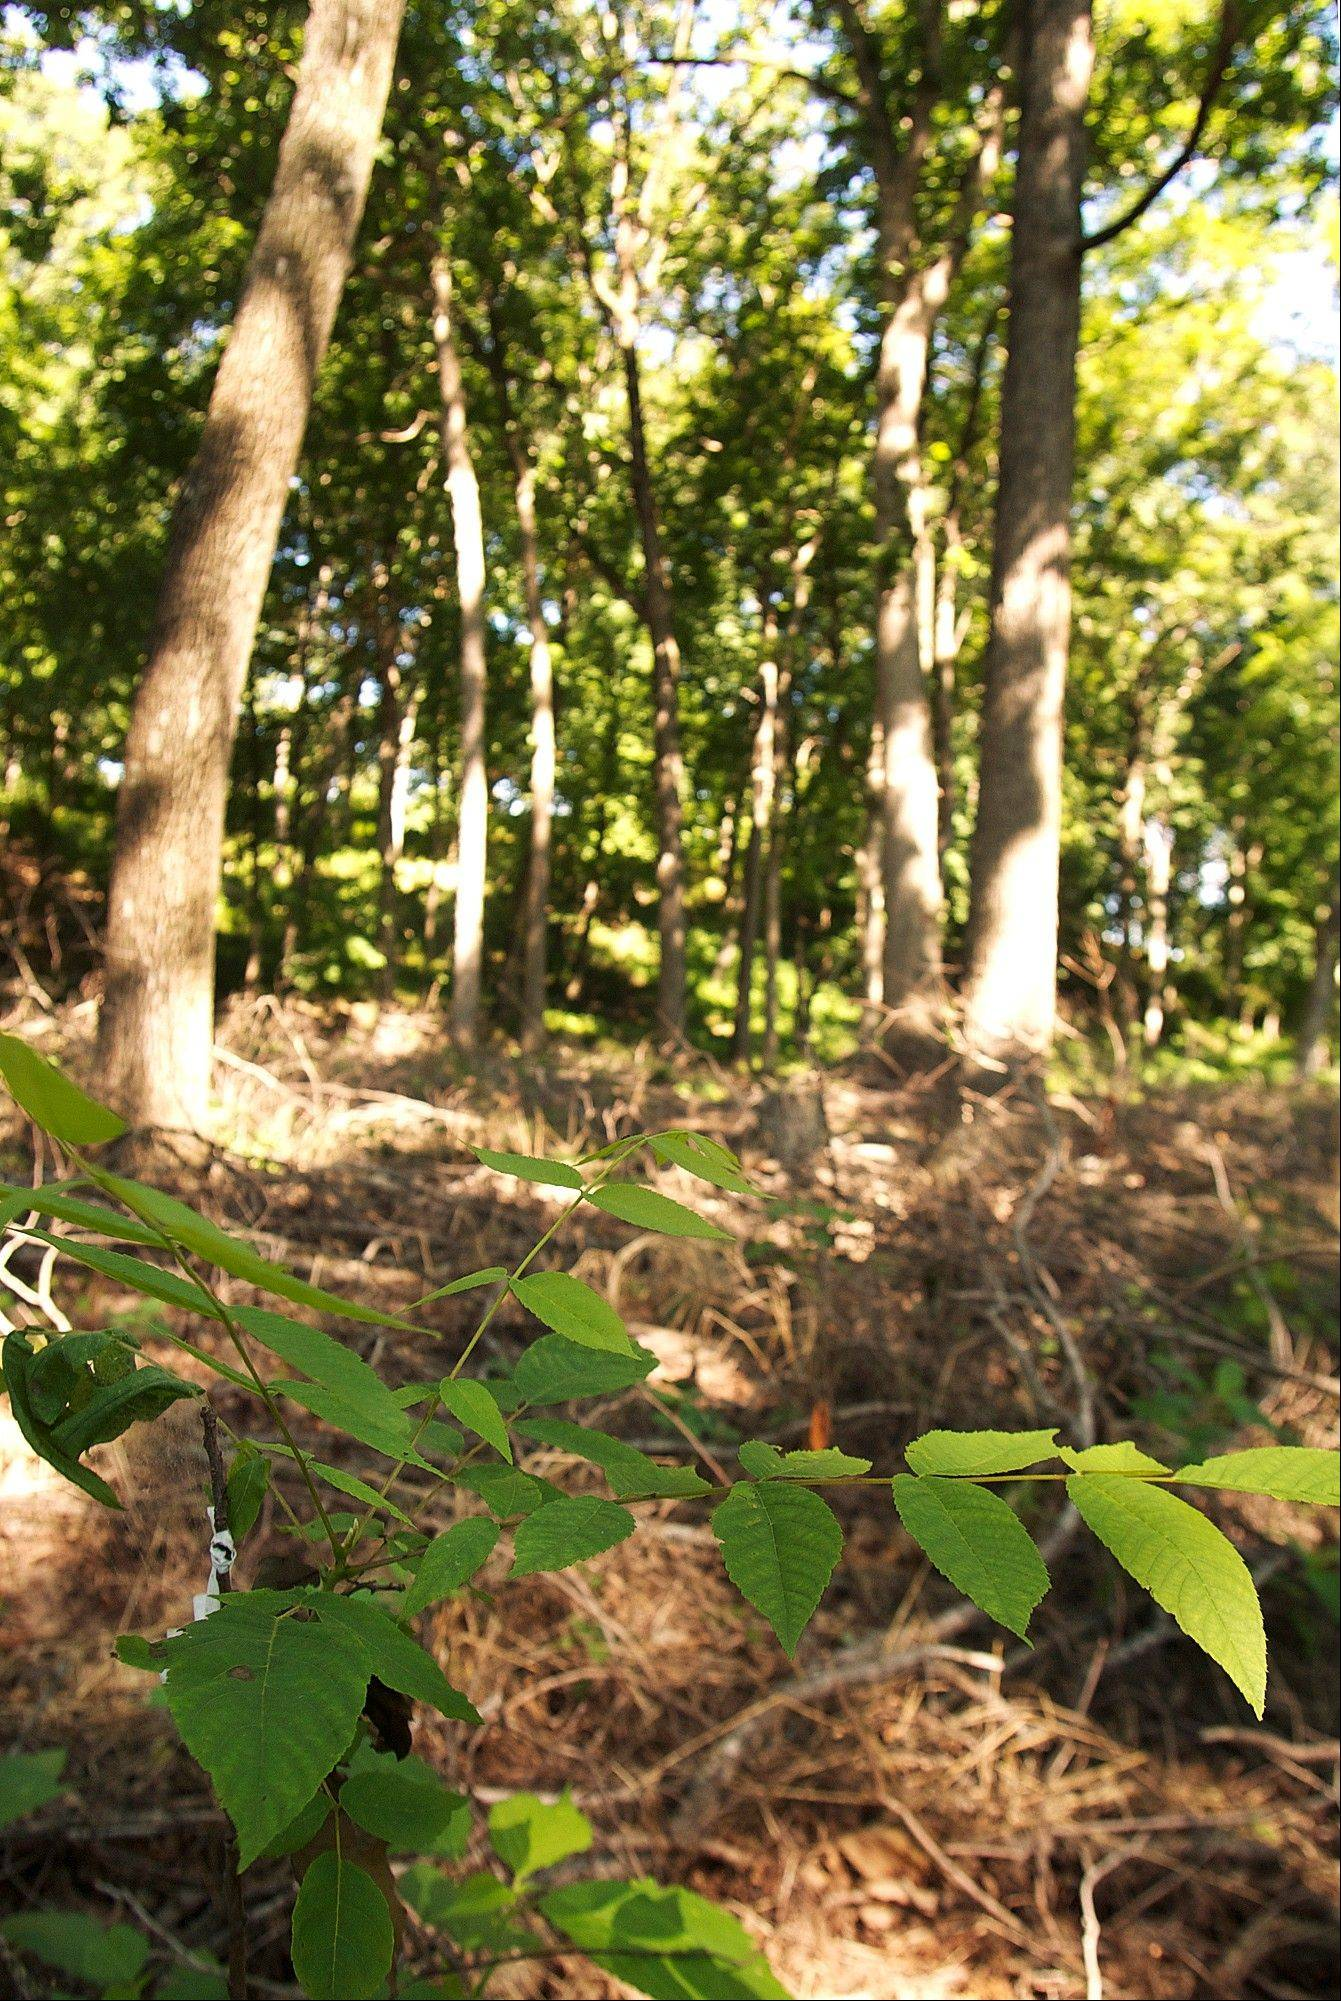 Blackburn College has planted walnut trees on a farm south of Carlineville.